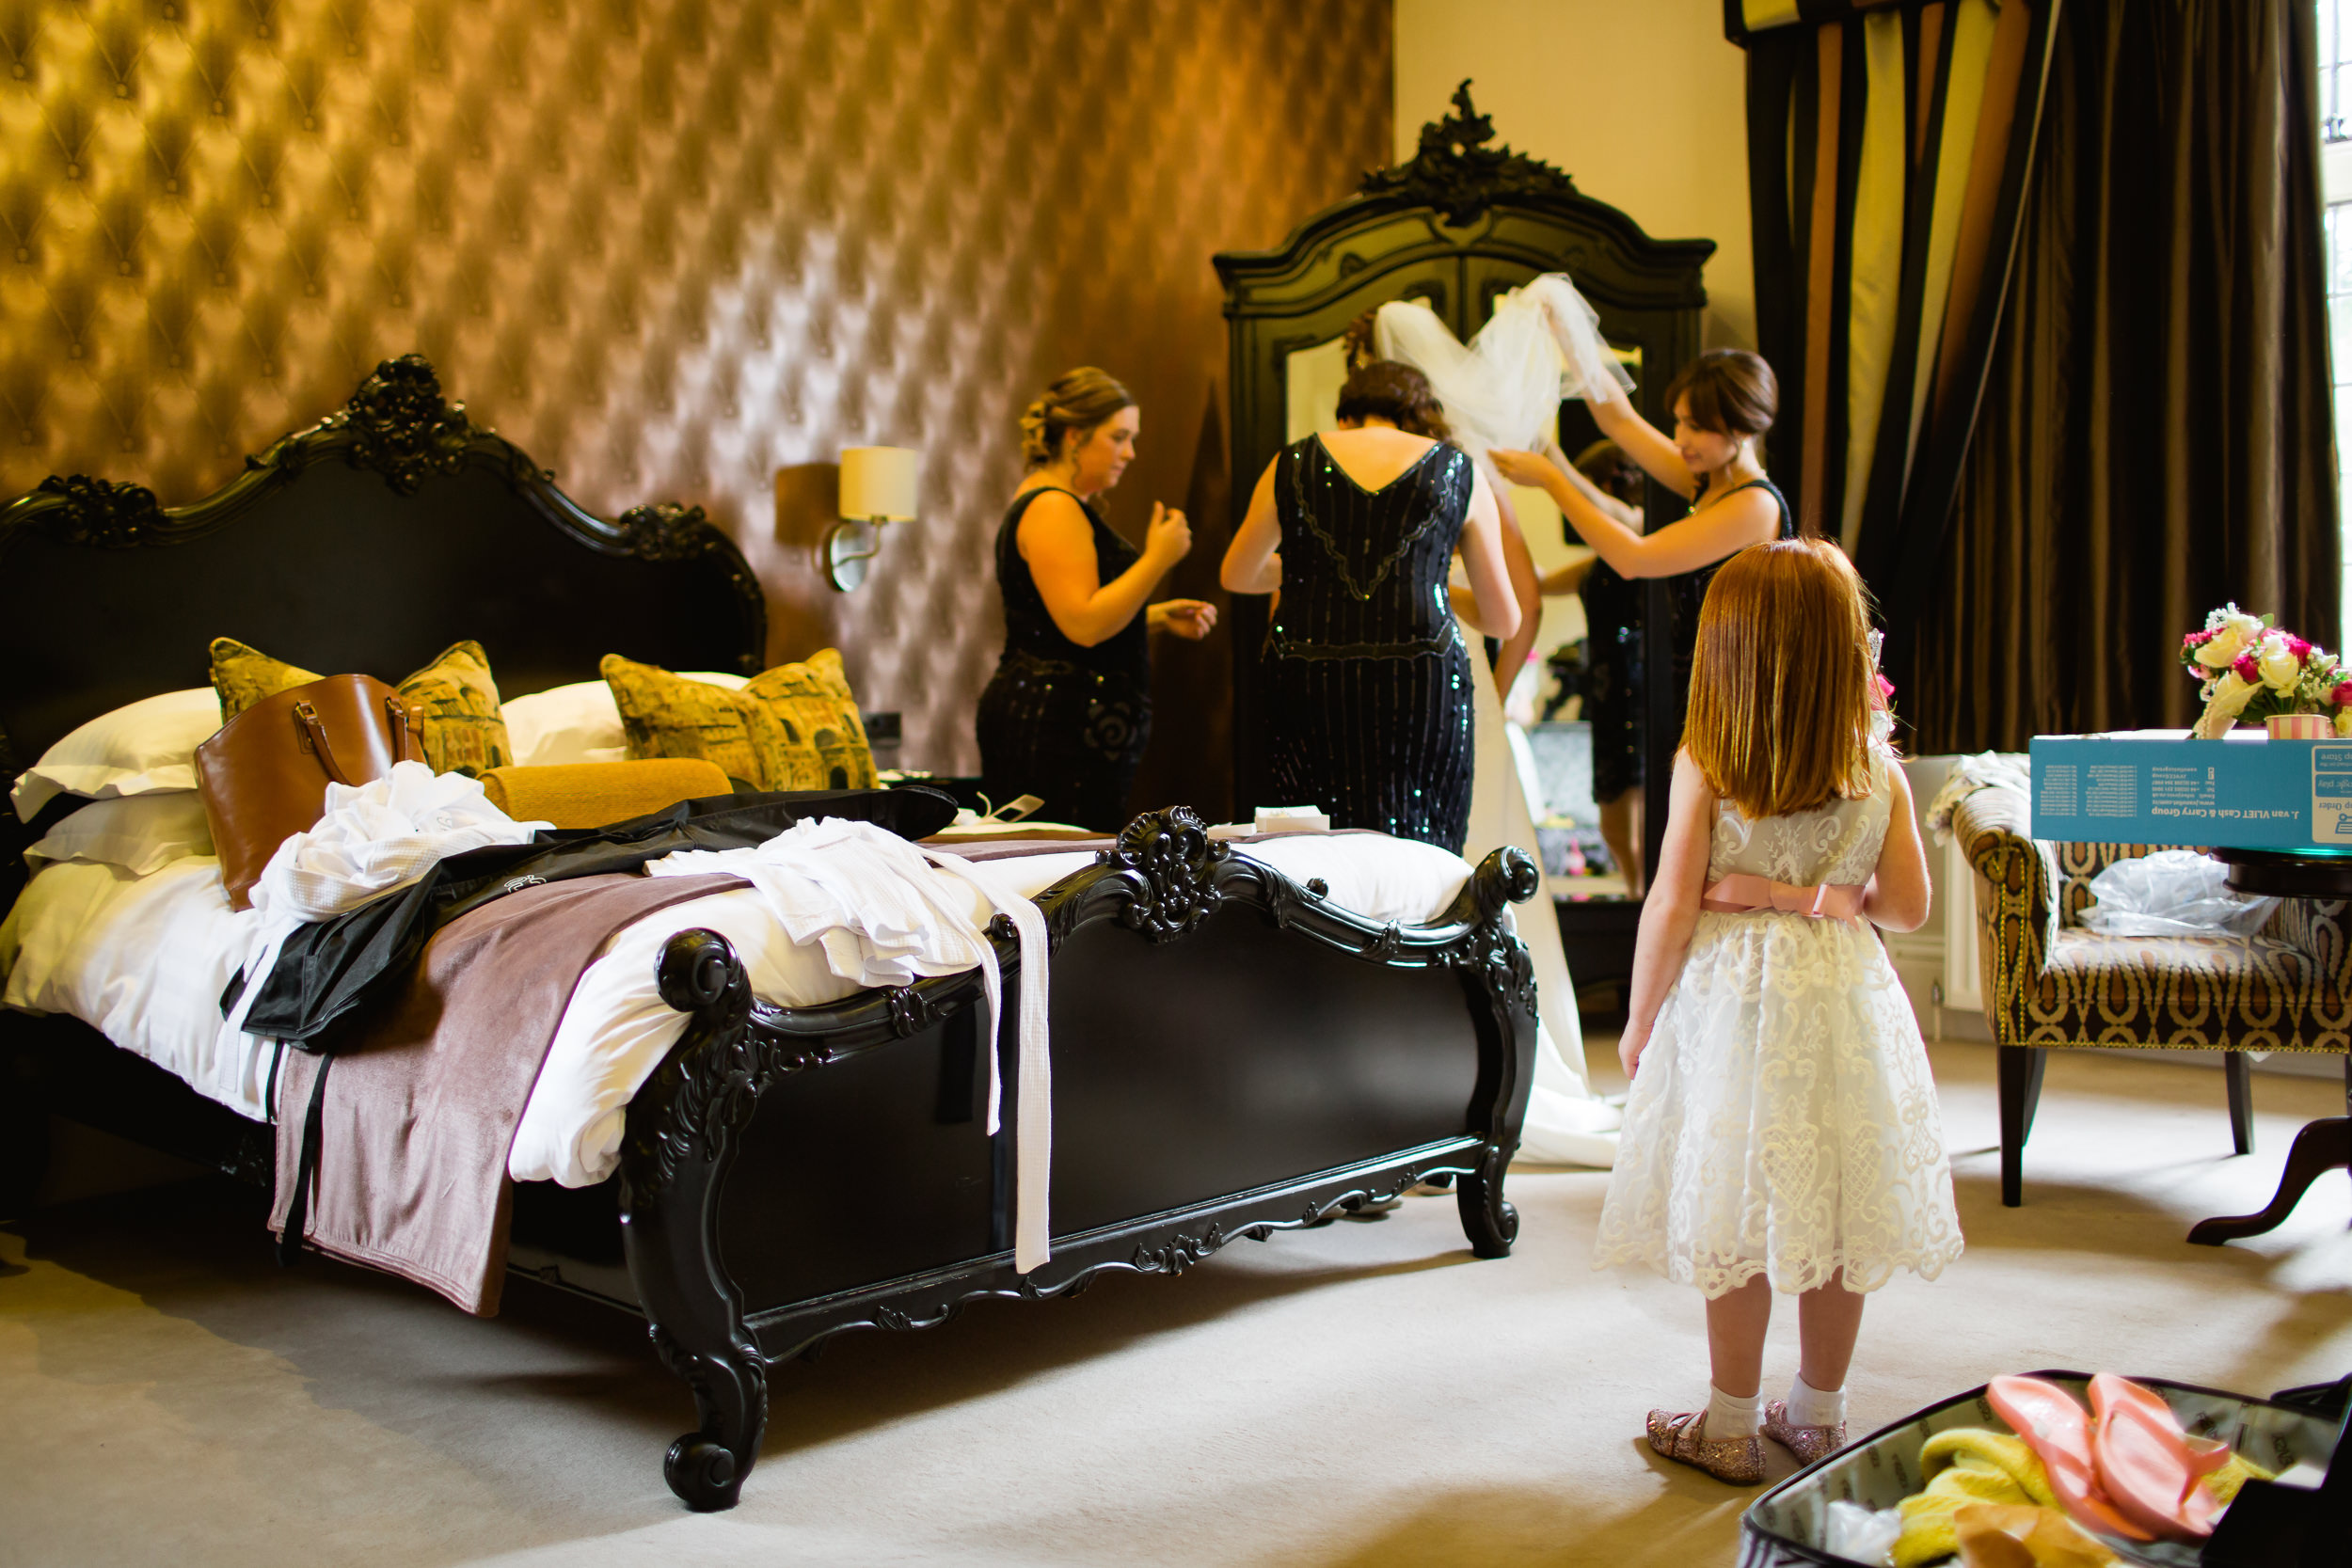 getting ready at Moxhulll Hall - Moxhull Hall wedding